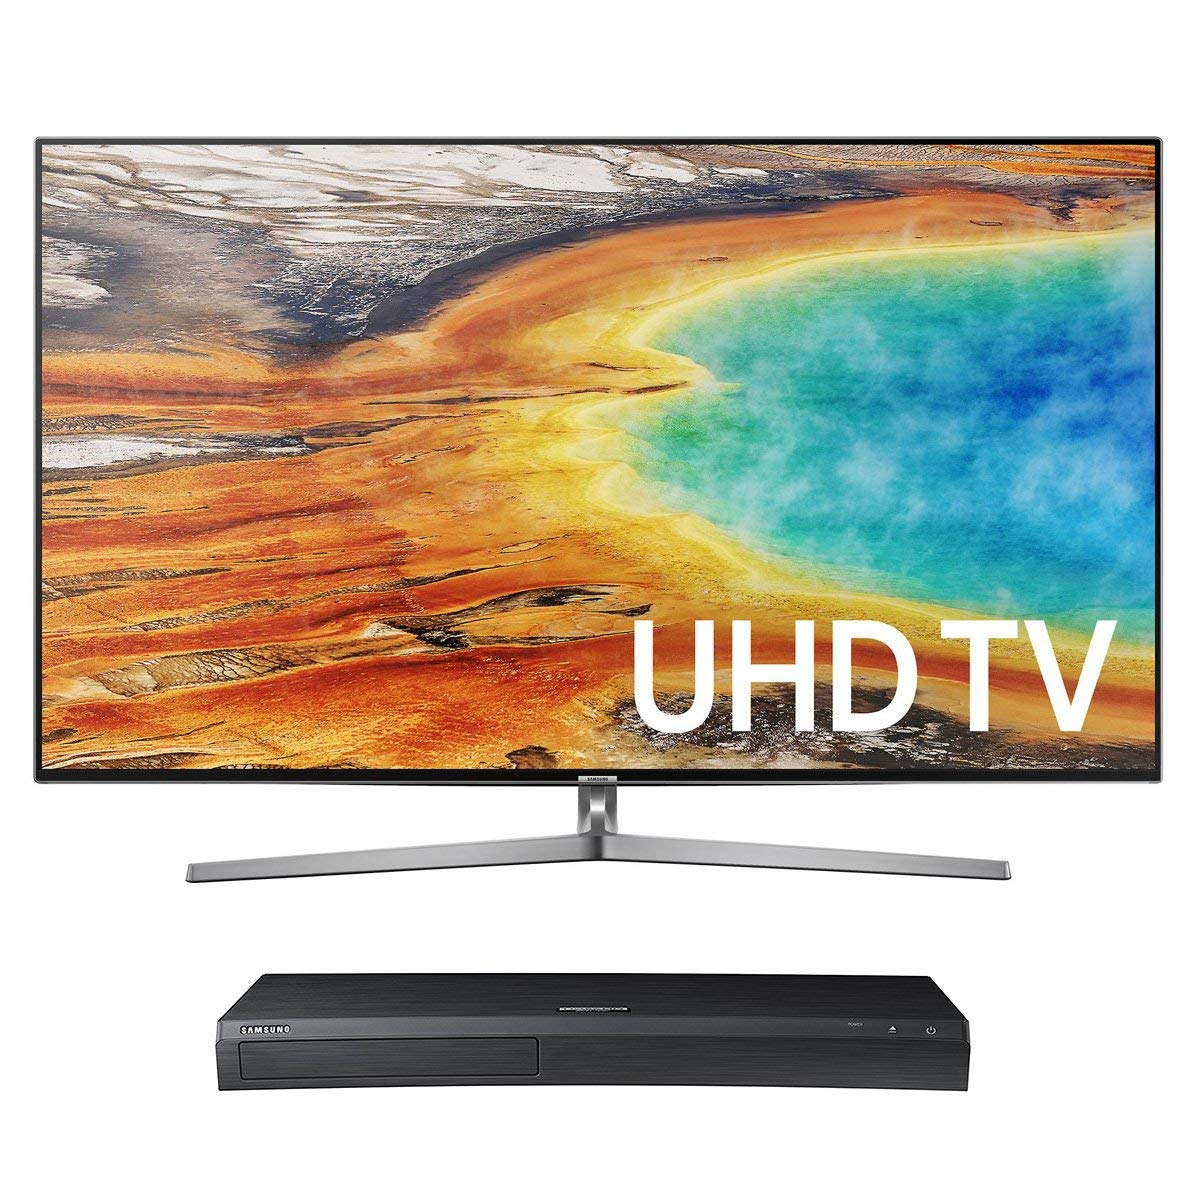 An image related to Samsung UN75MU9000 75-Inch HDR Flat Screen 4K TV with Samsung Motion Rate 240